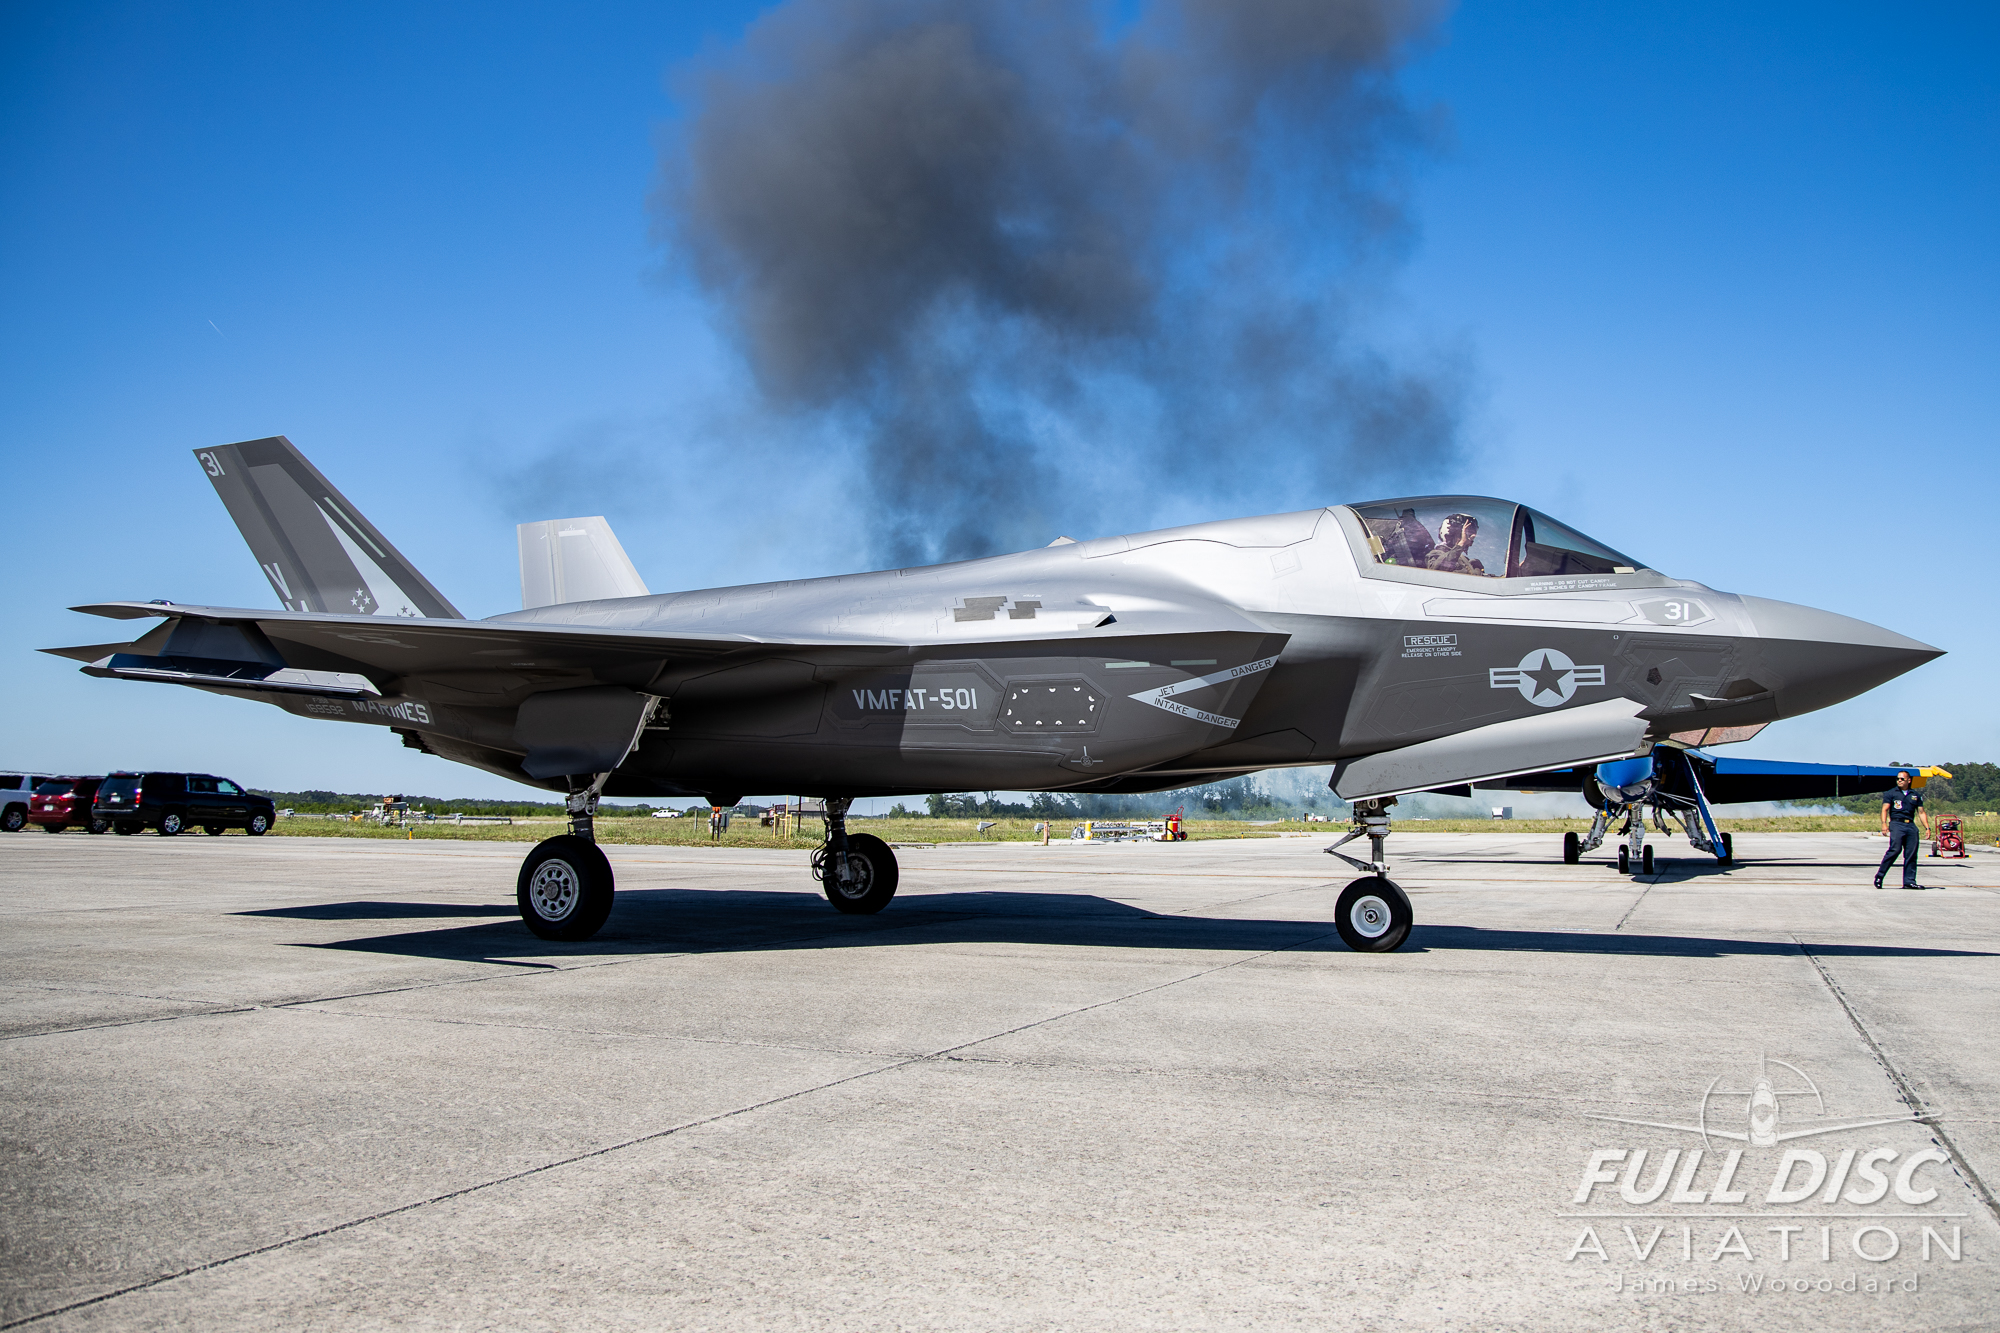 Full_Disc_Aviaiton _James_Woodard_MCAS_Beaufort-April 27, 2019-36.jpg